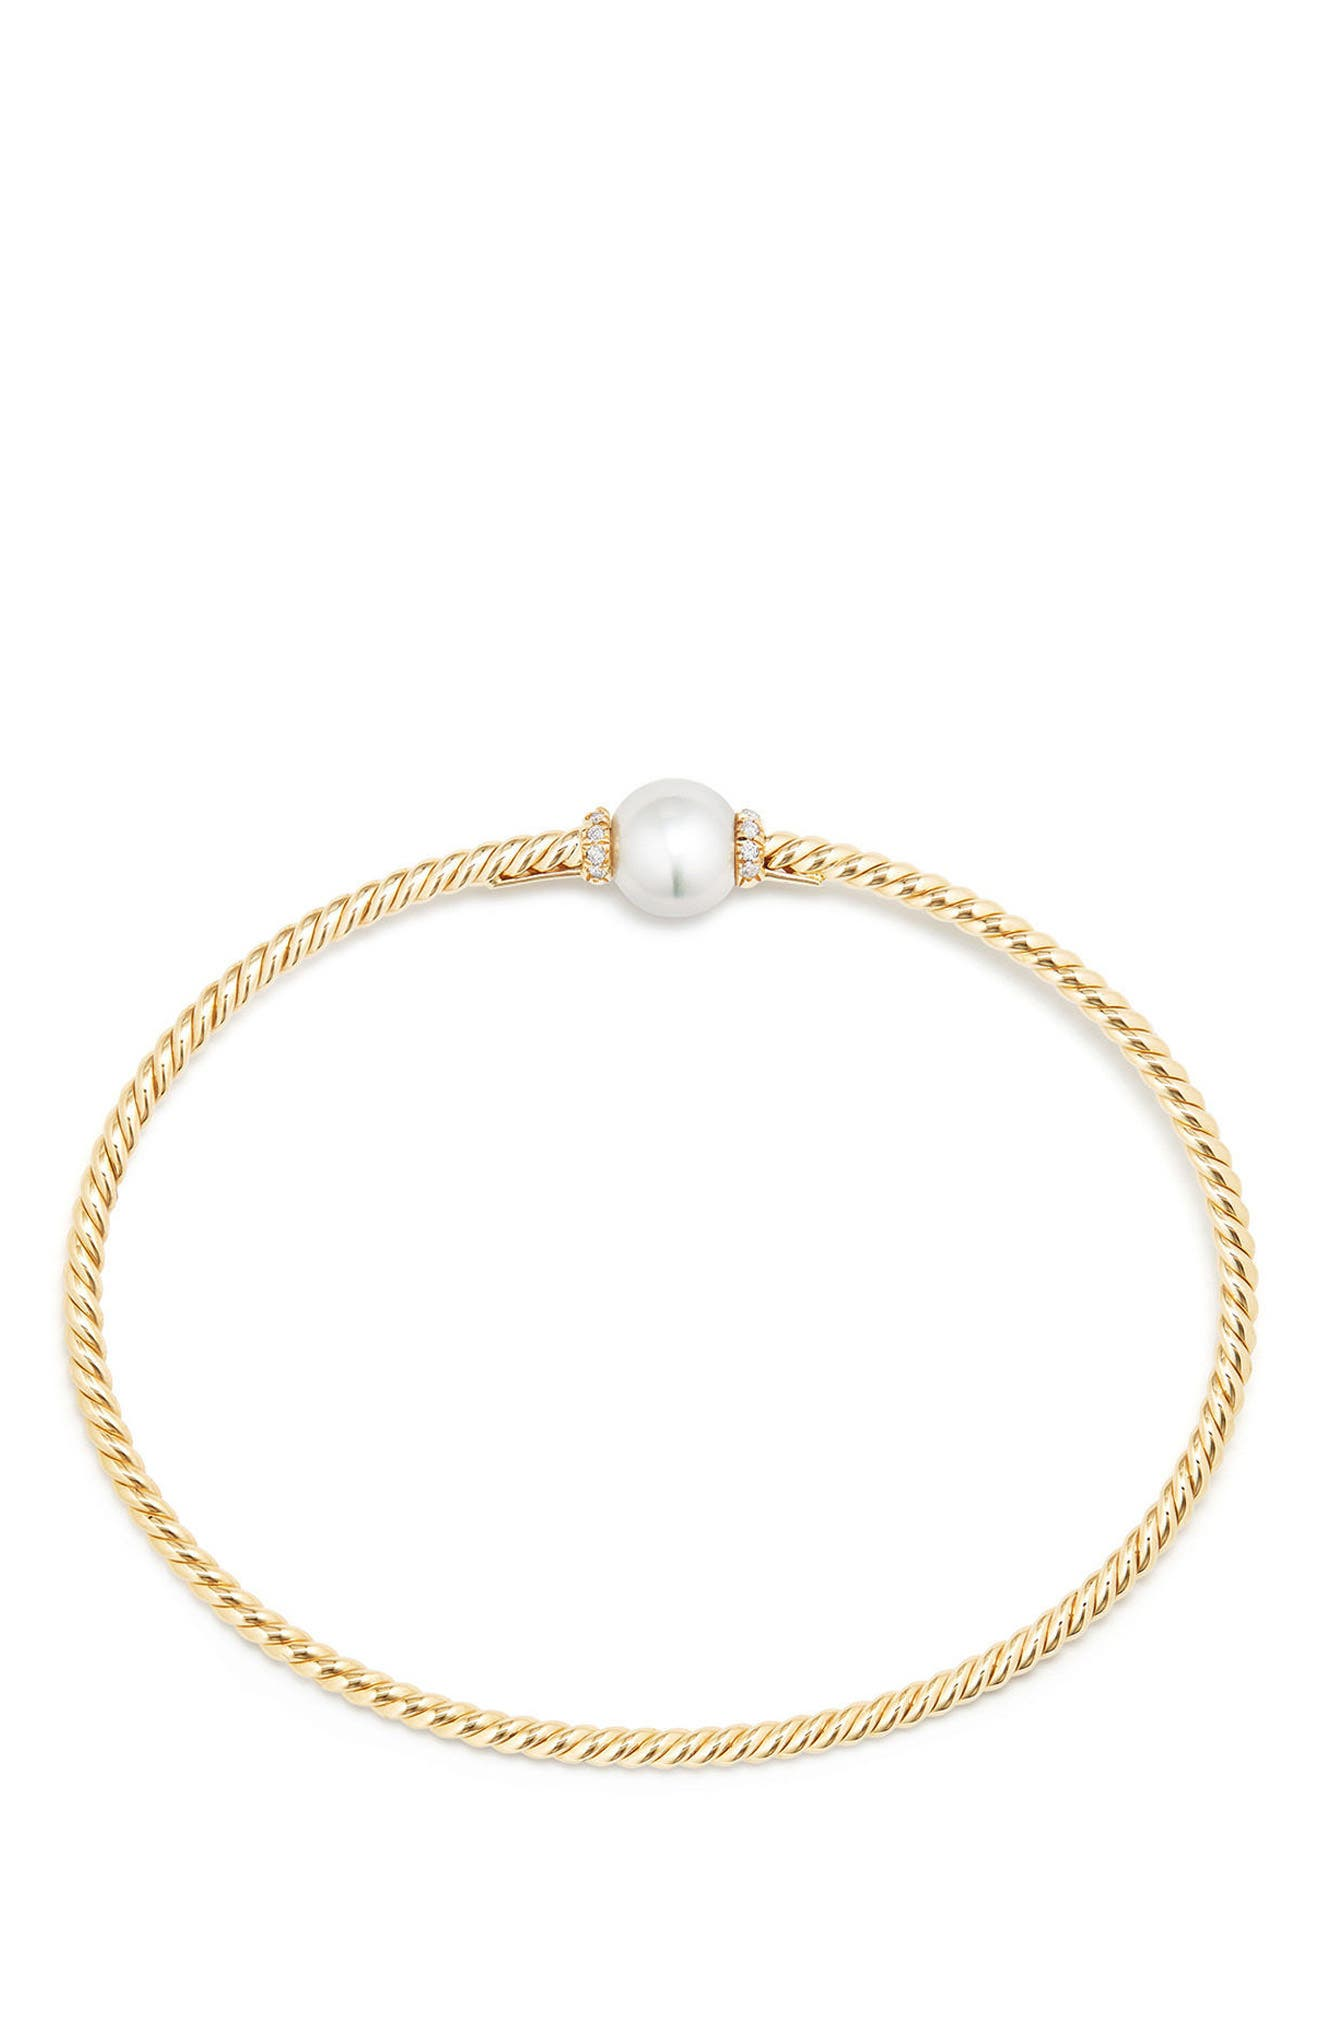 Solari Station Bracelet with Cultured Pearl & Diamonds in 18K Gold,                             Alternate thumbnail 2, color,                             Yellow Gold/ Diamond/ Pearl